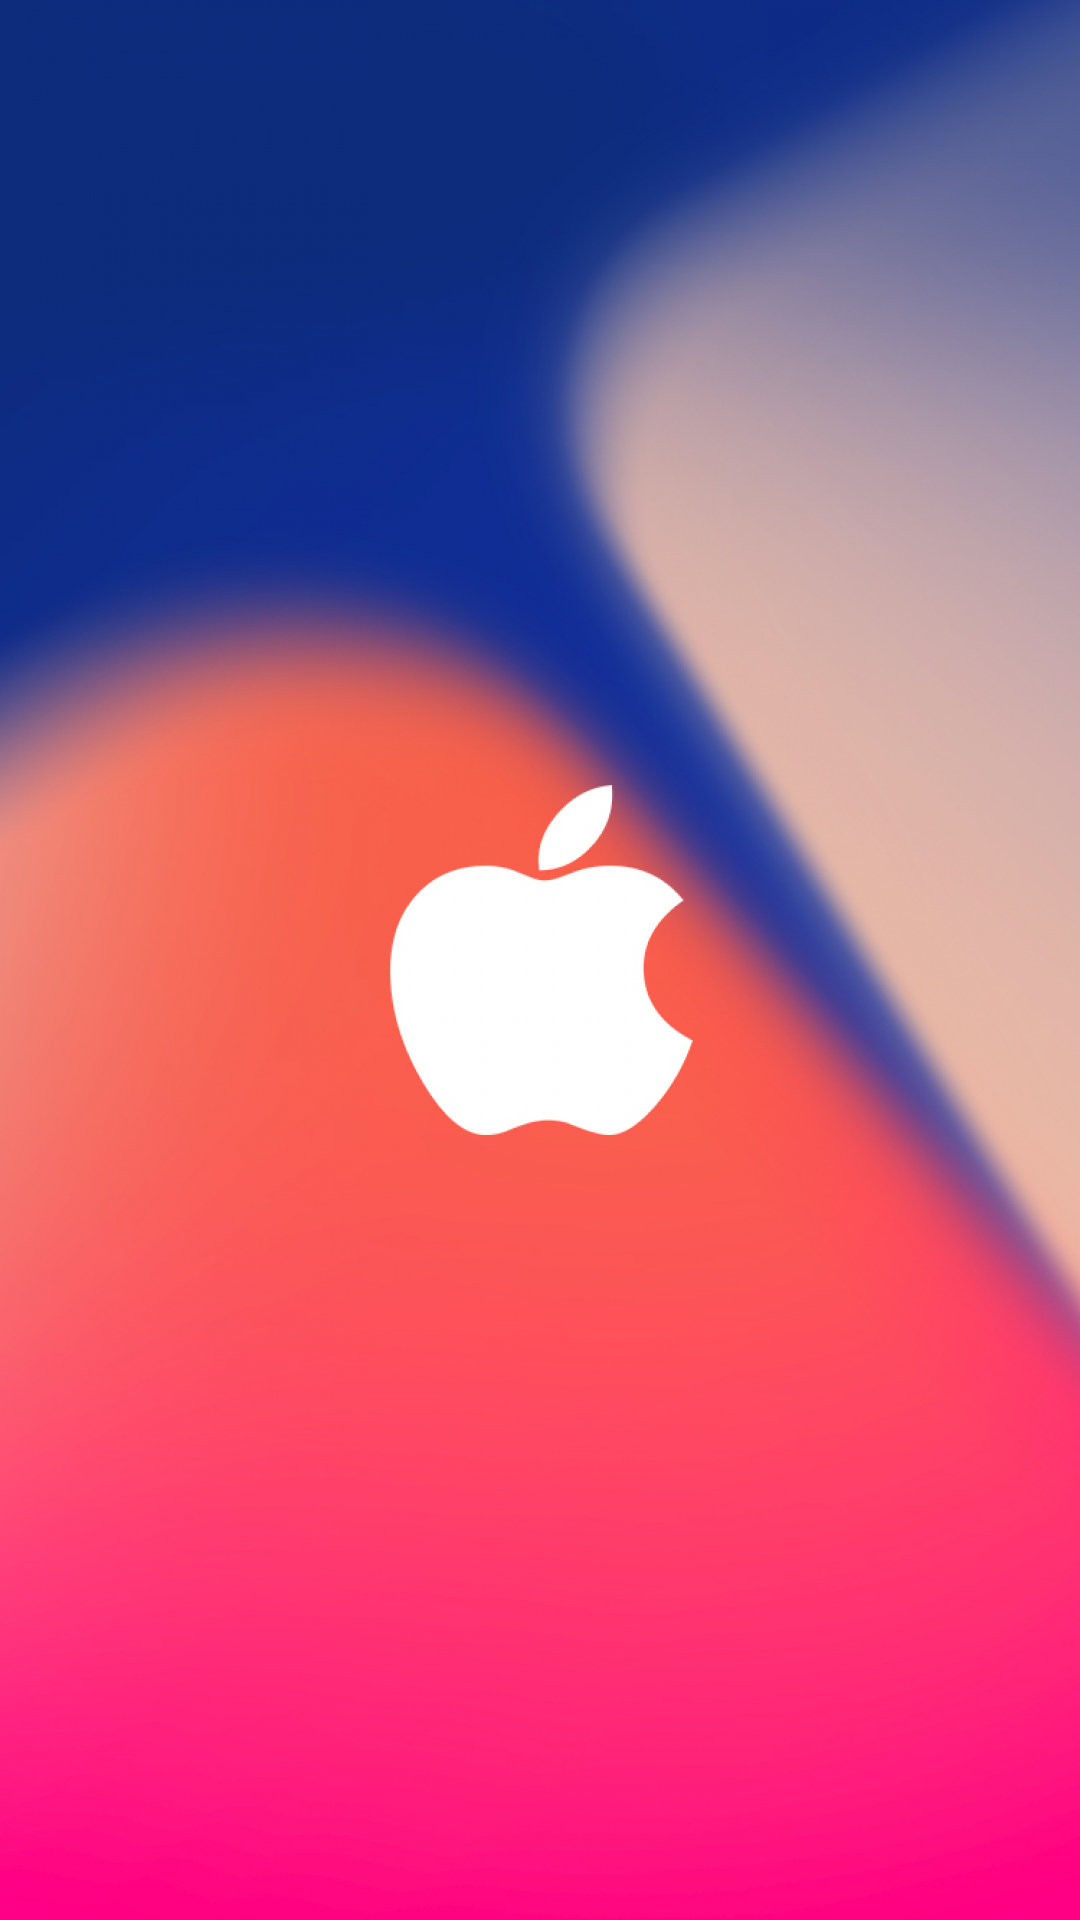 Apple event 2017 iphone wallpaper idrop news for Immagini apple hd